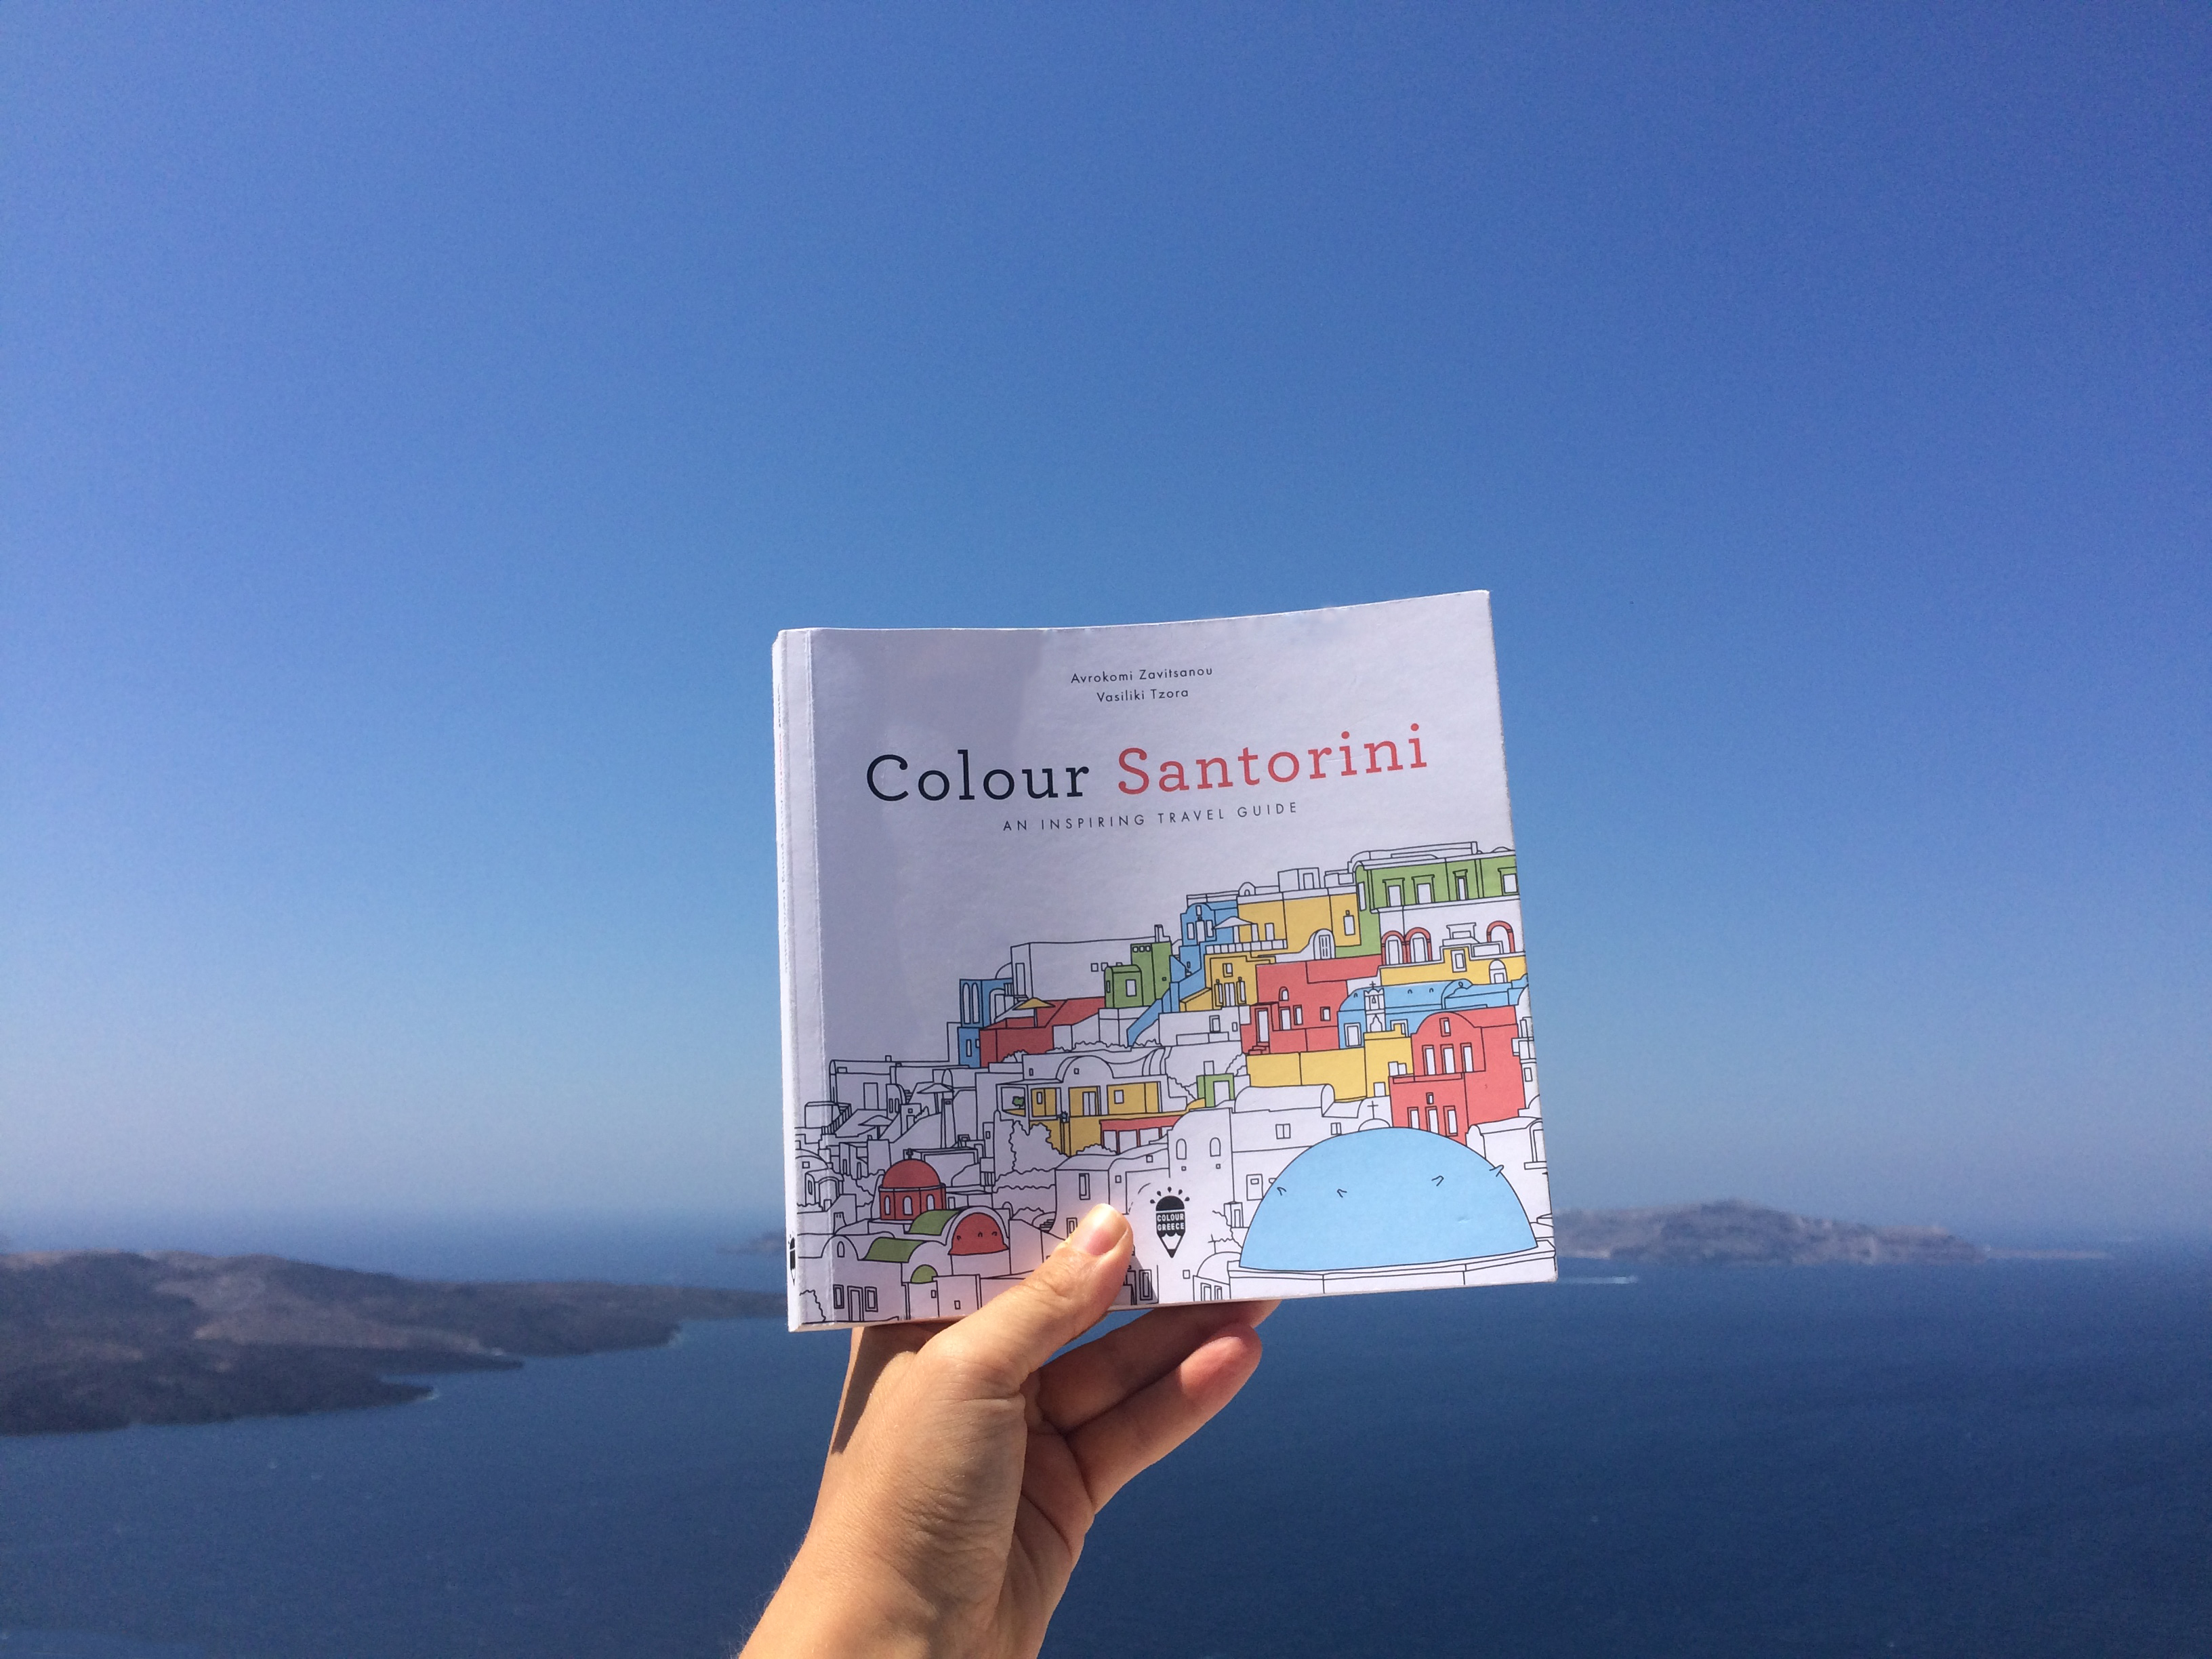 Colour Greece are colouring books about Greece designed by two young greek designers